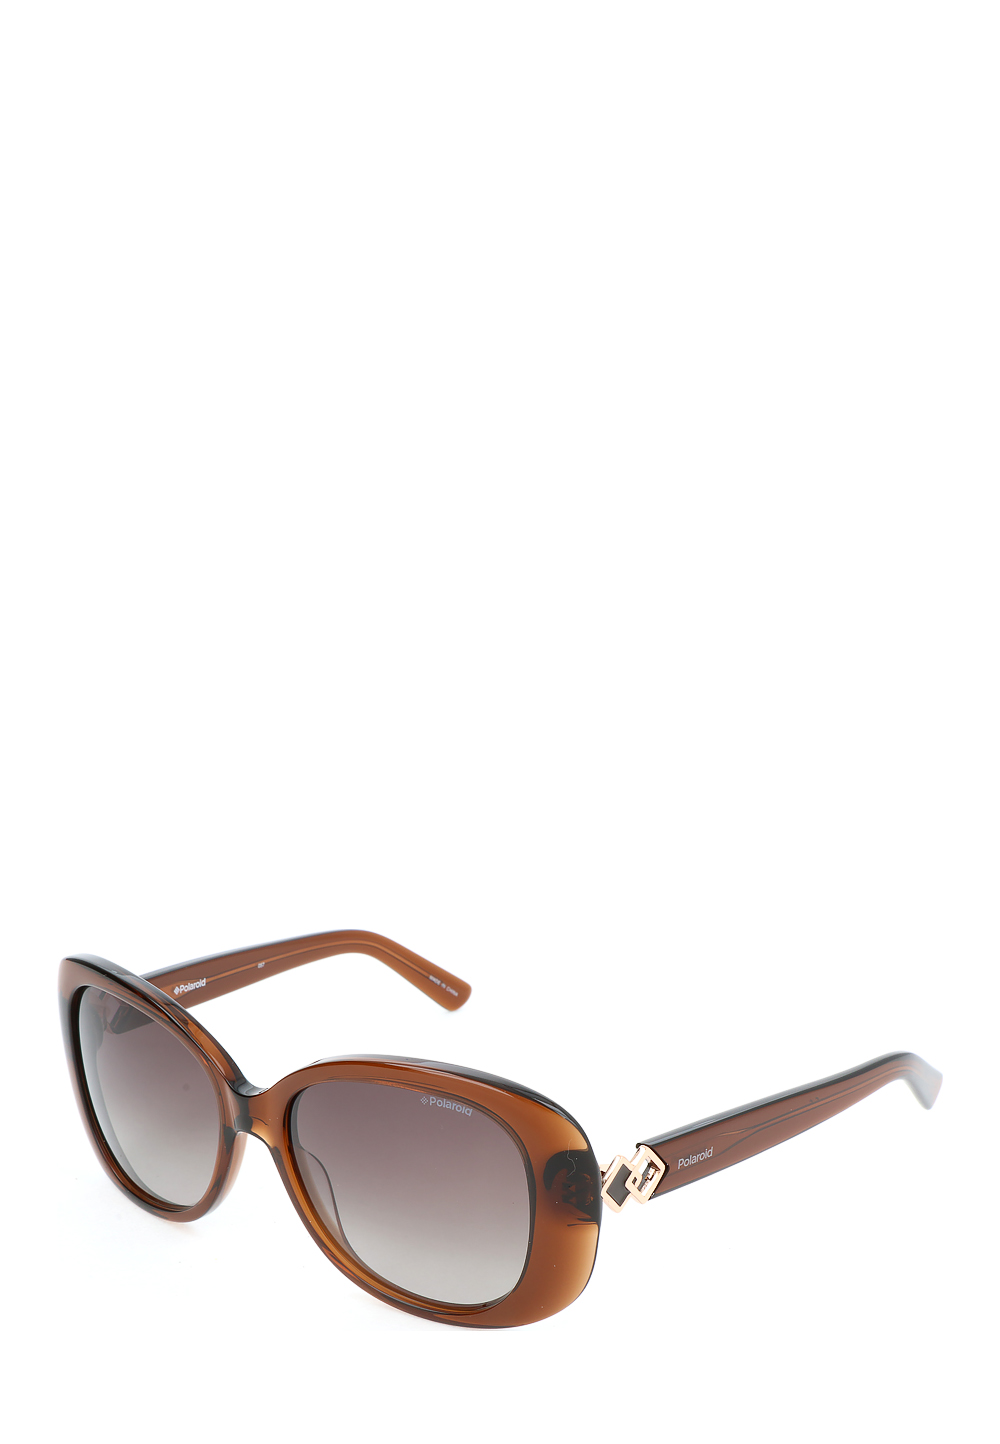 Sonnenbrille Pld4051/U/S, polarized, Uv400, brown braun